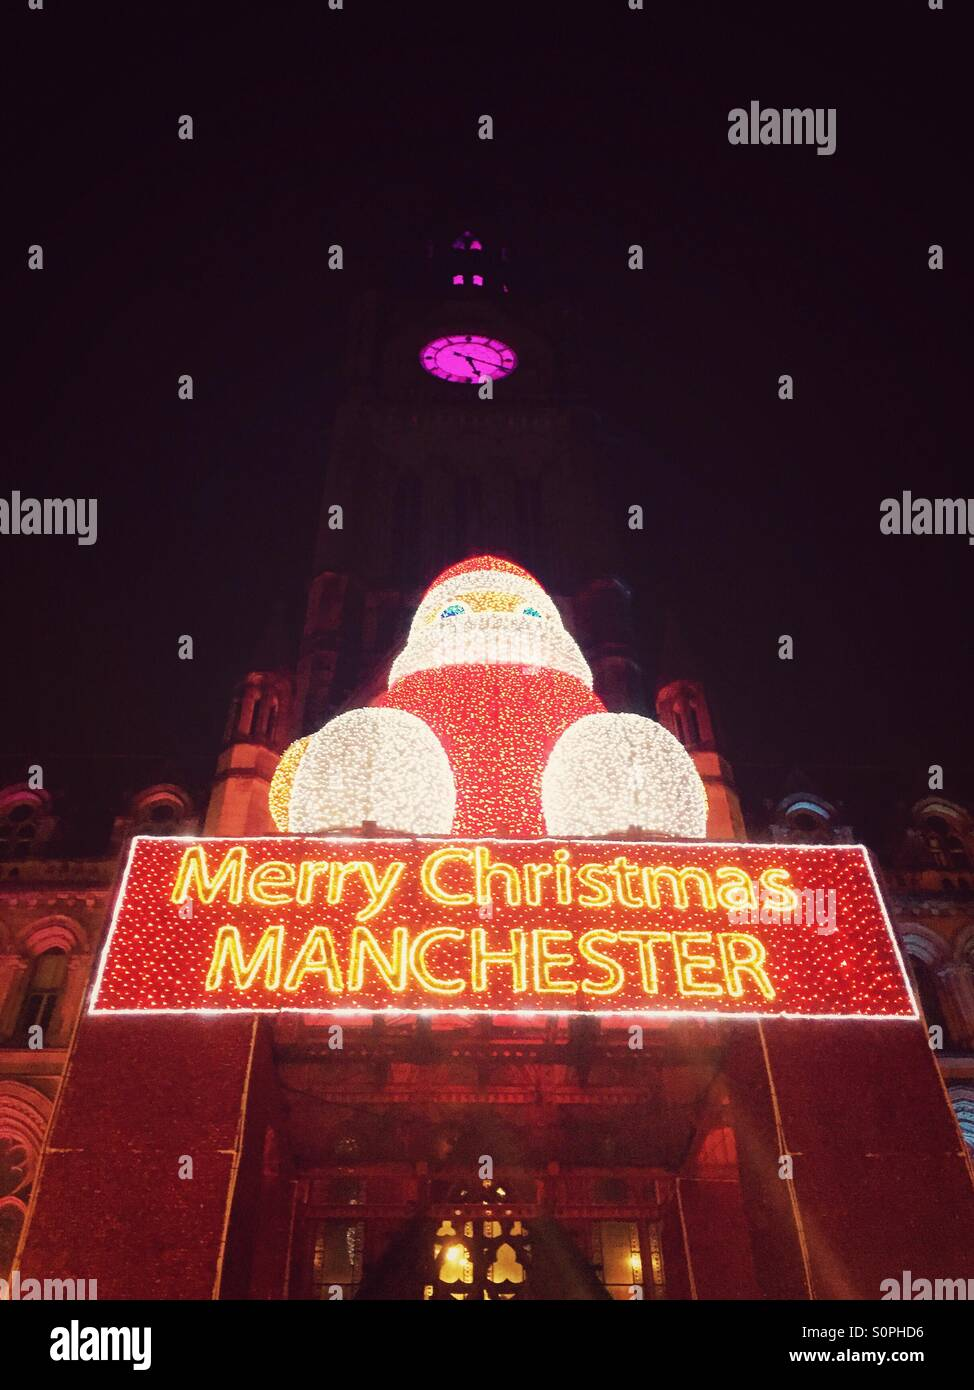 Merry Christmas sign, Manchester Christmas Market - Stock Image